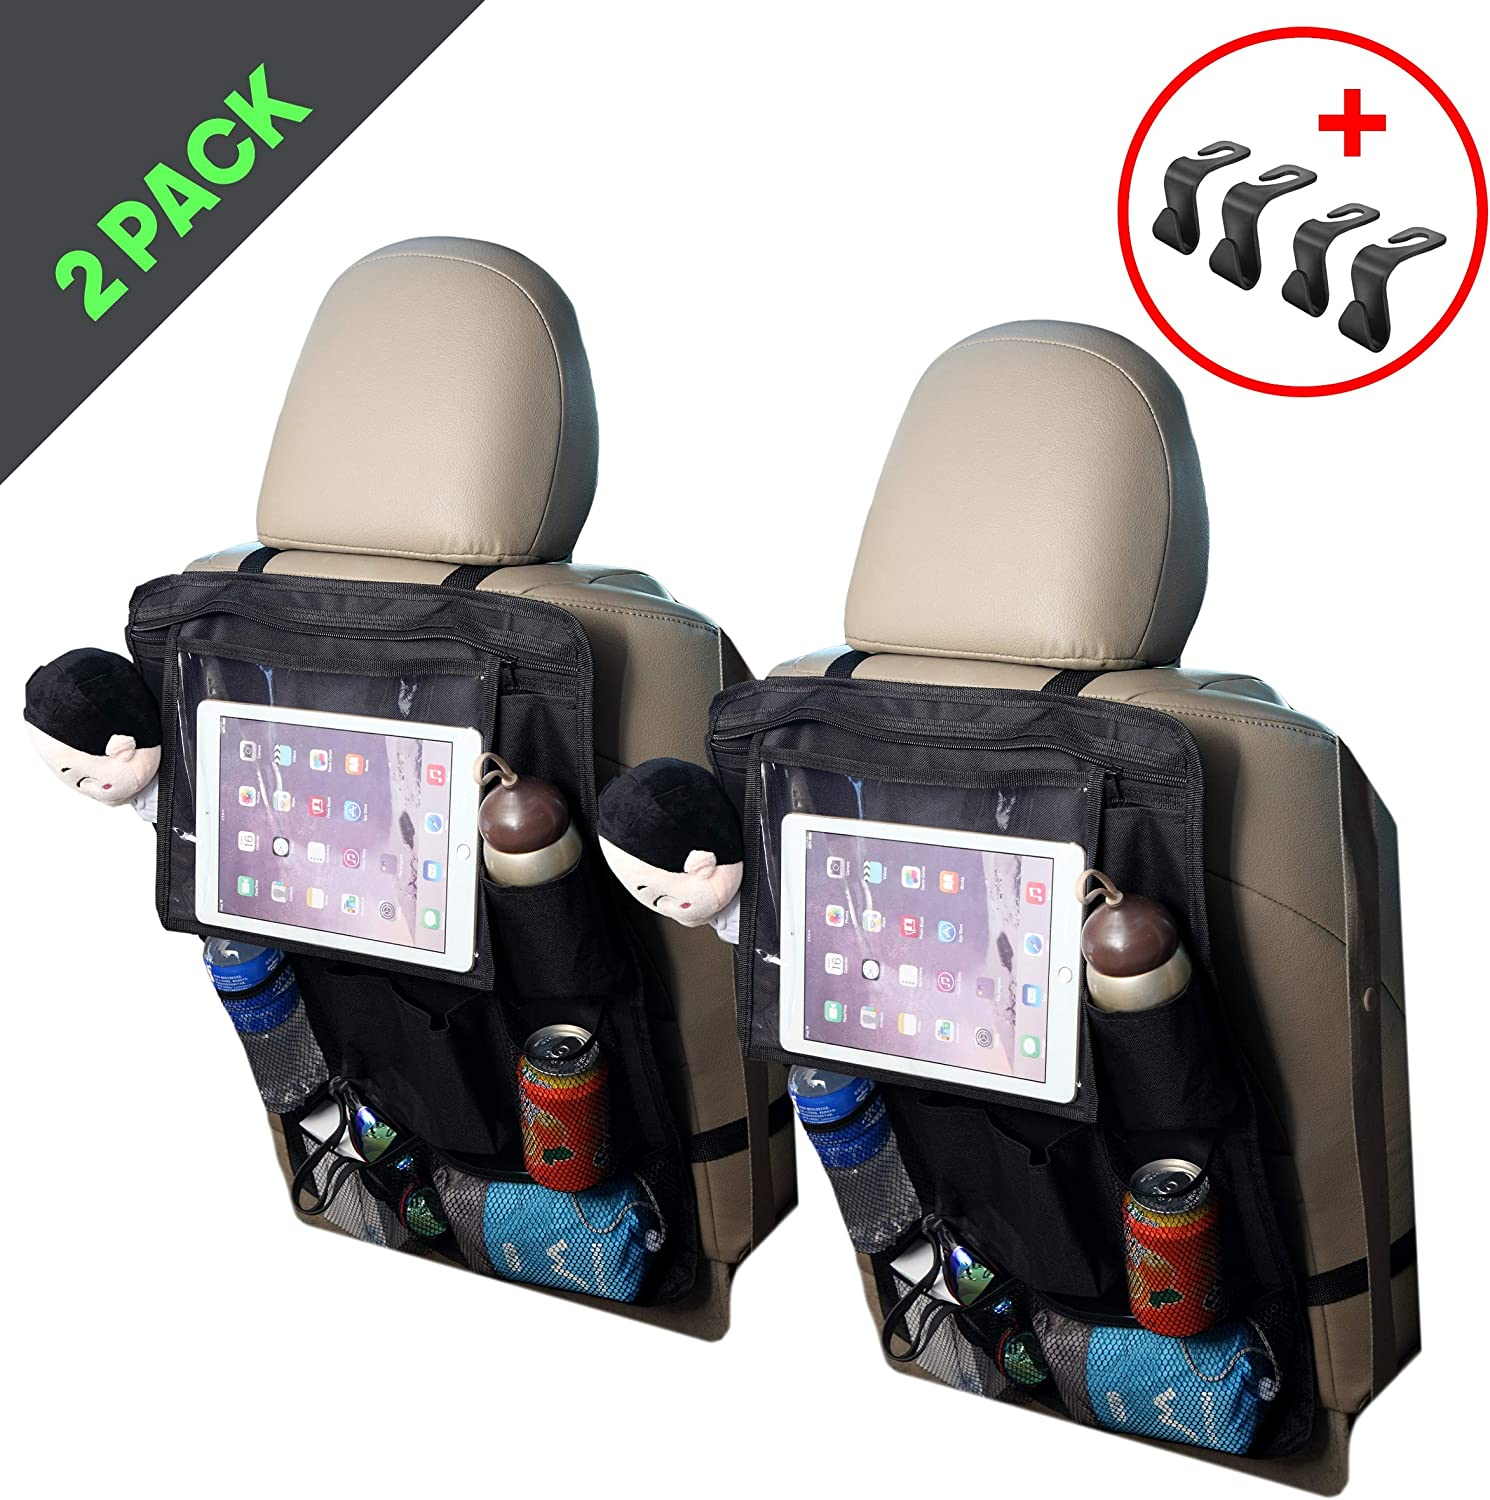 Bzon Car Backseat Organizer 9 Storage Pockets with Touch Screen Tablet Holder Kick Mats Car Seat Back Protector Great Travel Accessories for Kids and Toddlers (2 Pack)